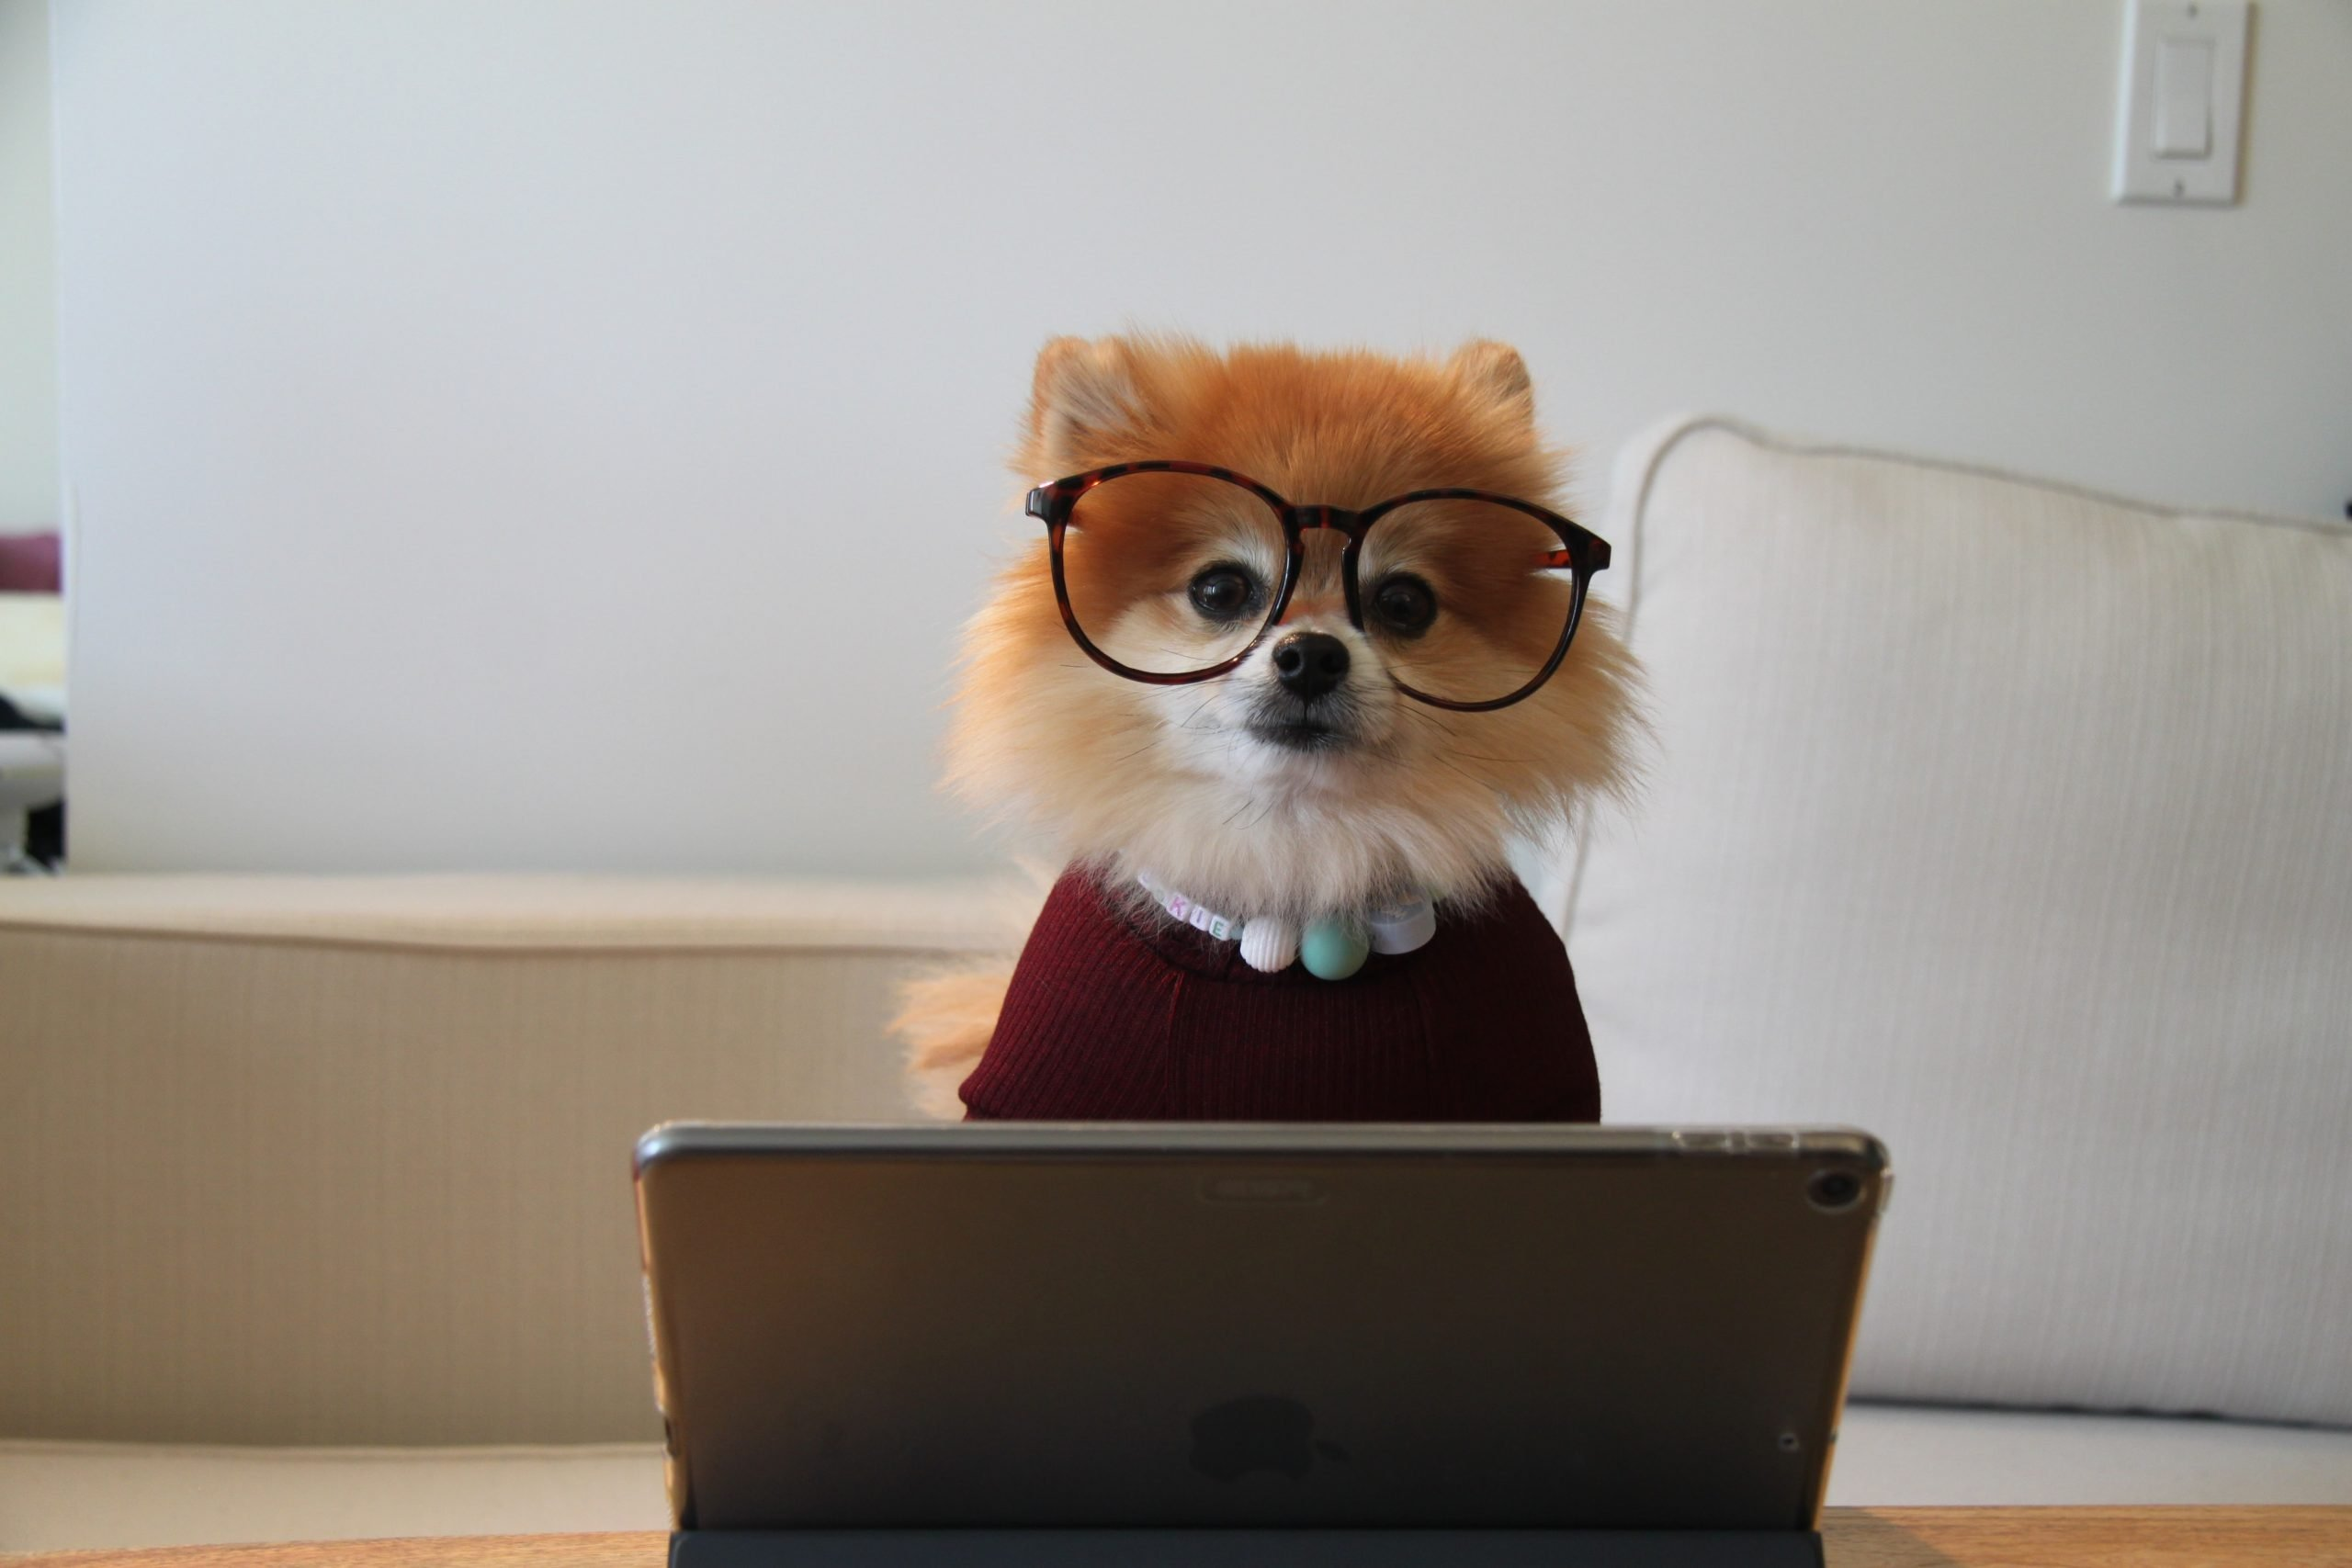 Pomeranian wearing glasses, necklace and sweater sits at a computer